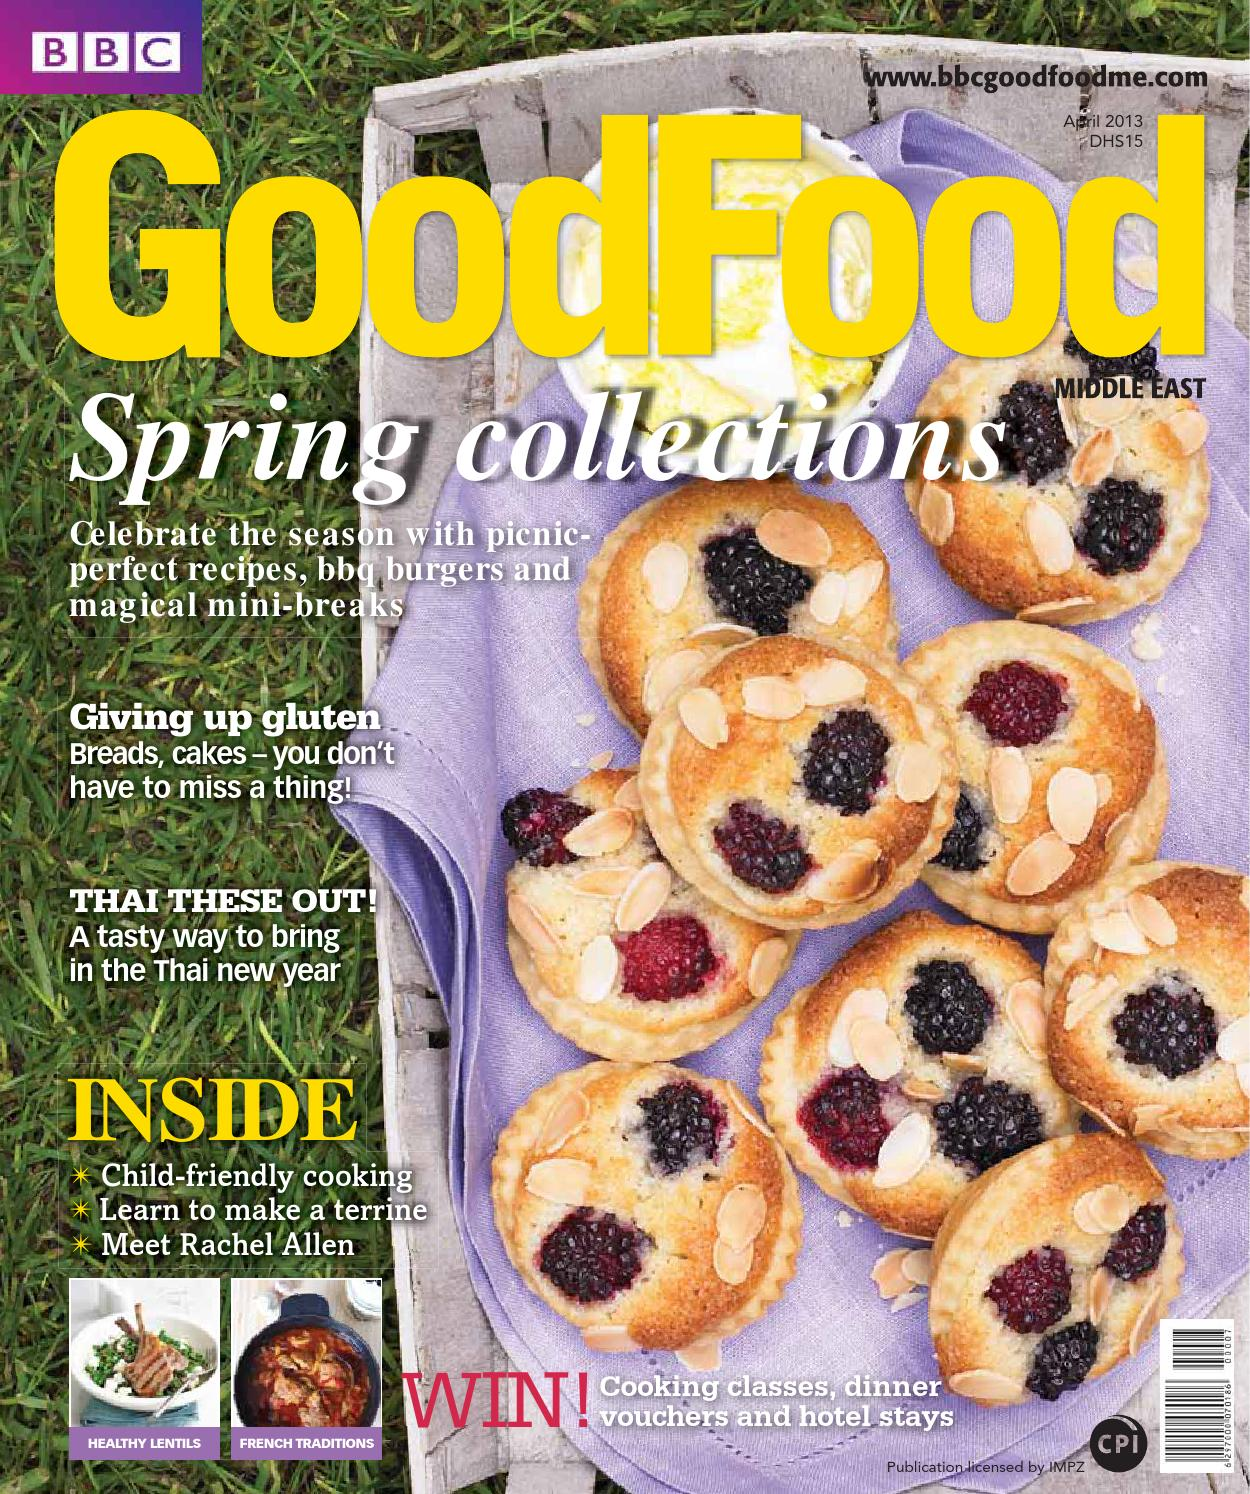 Bbc good food middle east magazine april 2013 by bbc good food me bbc good food middle east magazine april 2013 by bbc good food me issuu forumfinder Choice Image